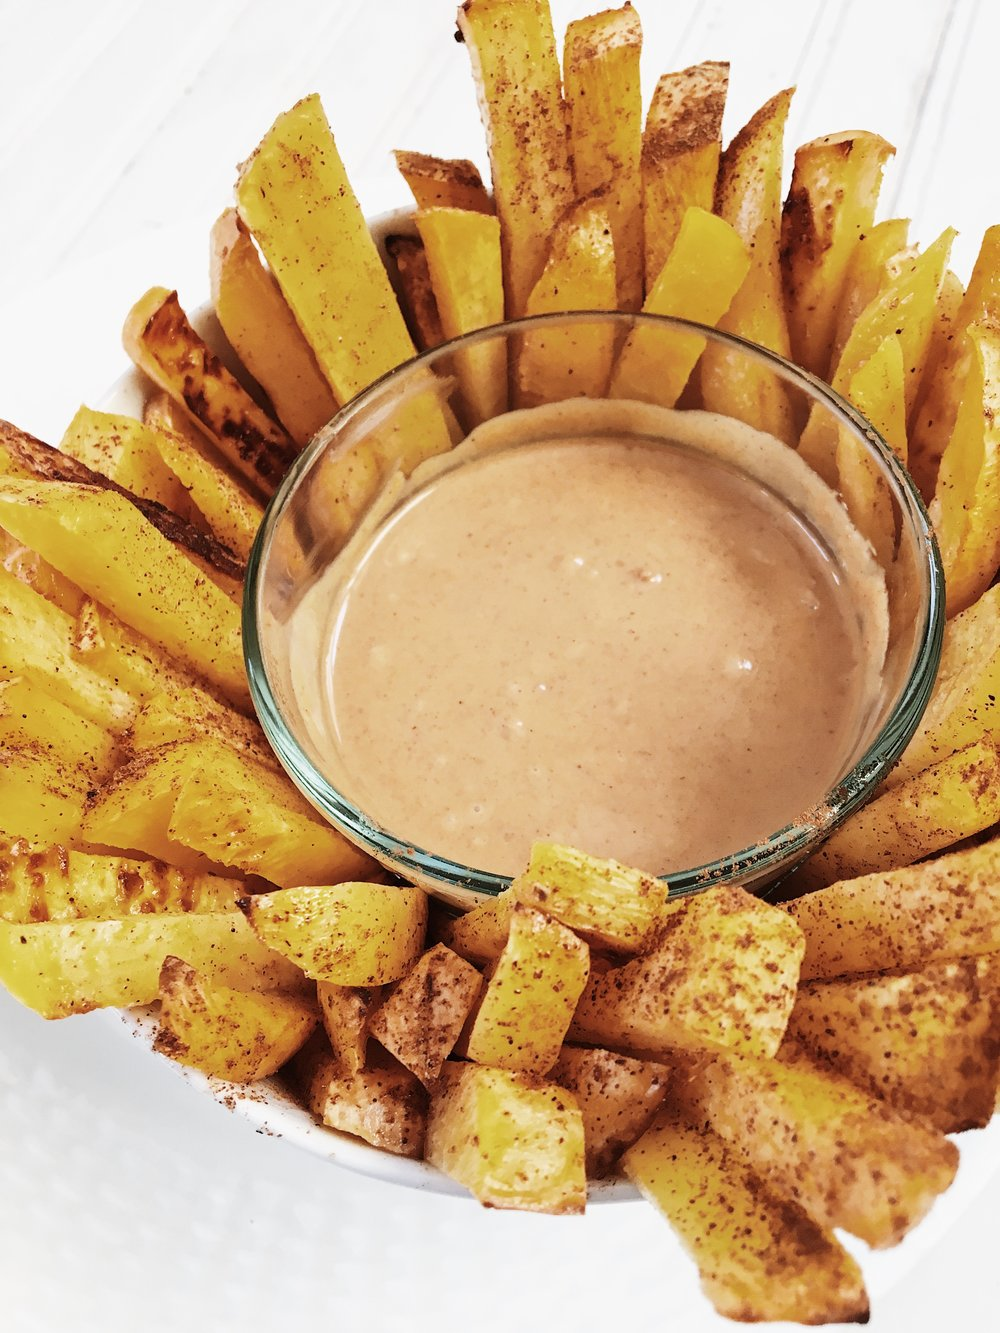 sweet-and-salty-roasted-rutabaga-fries-with-nut-butter-dipping-sauce